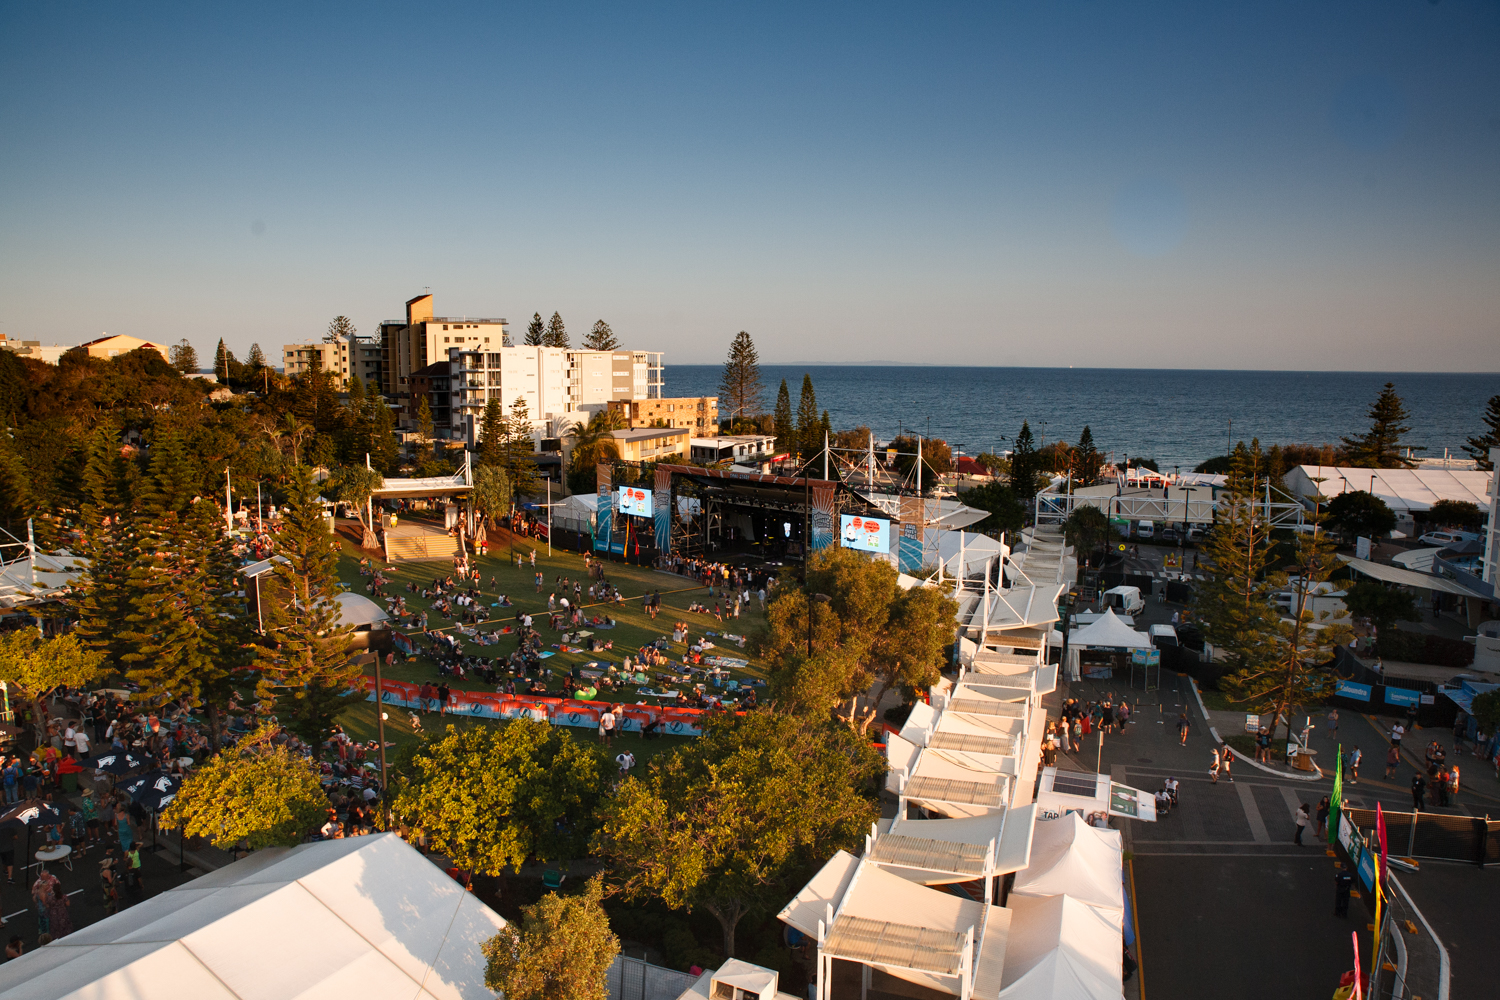 View from above of Caloundra Music Festival site.